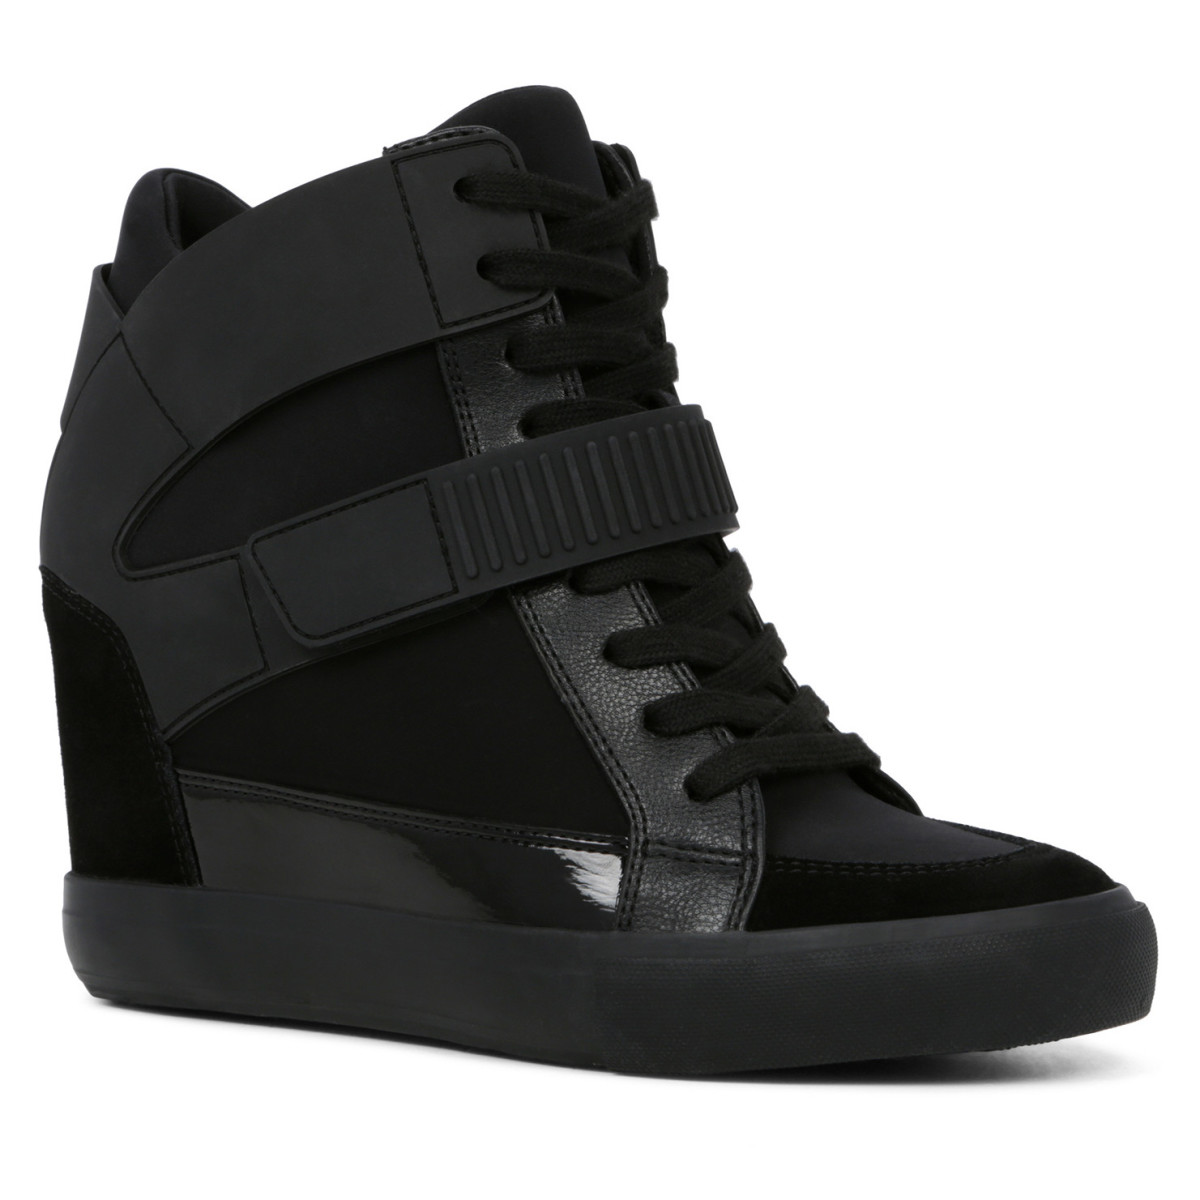 aldo gift card giveaway_Aldo BLOSS wedge sneaker